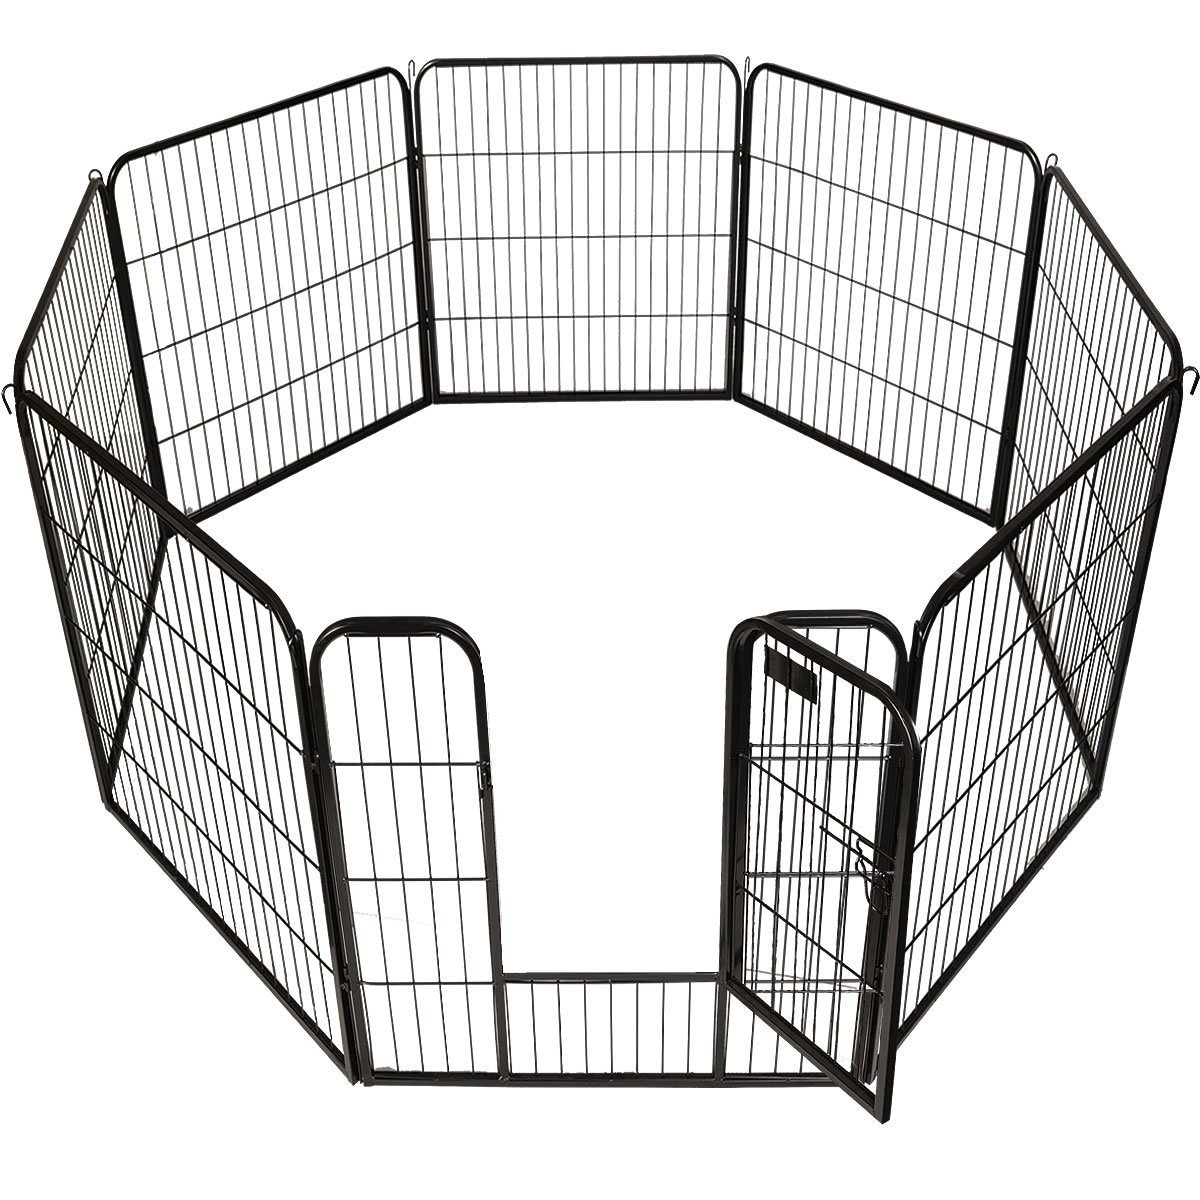 New 40'' X 31'' 8 Panel Heavy Duty Pet Playpen Dog Exercise Pen Cat Fence by Goplus